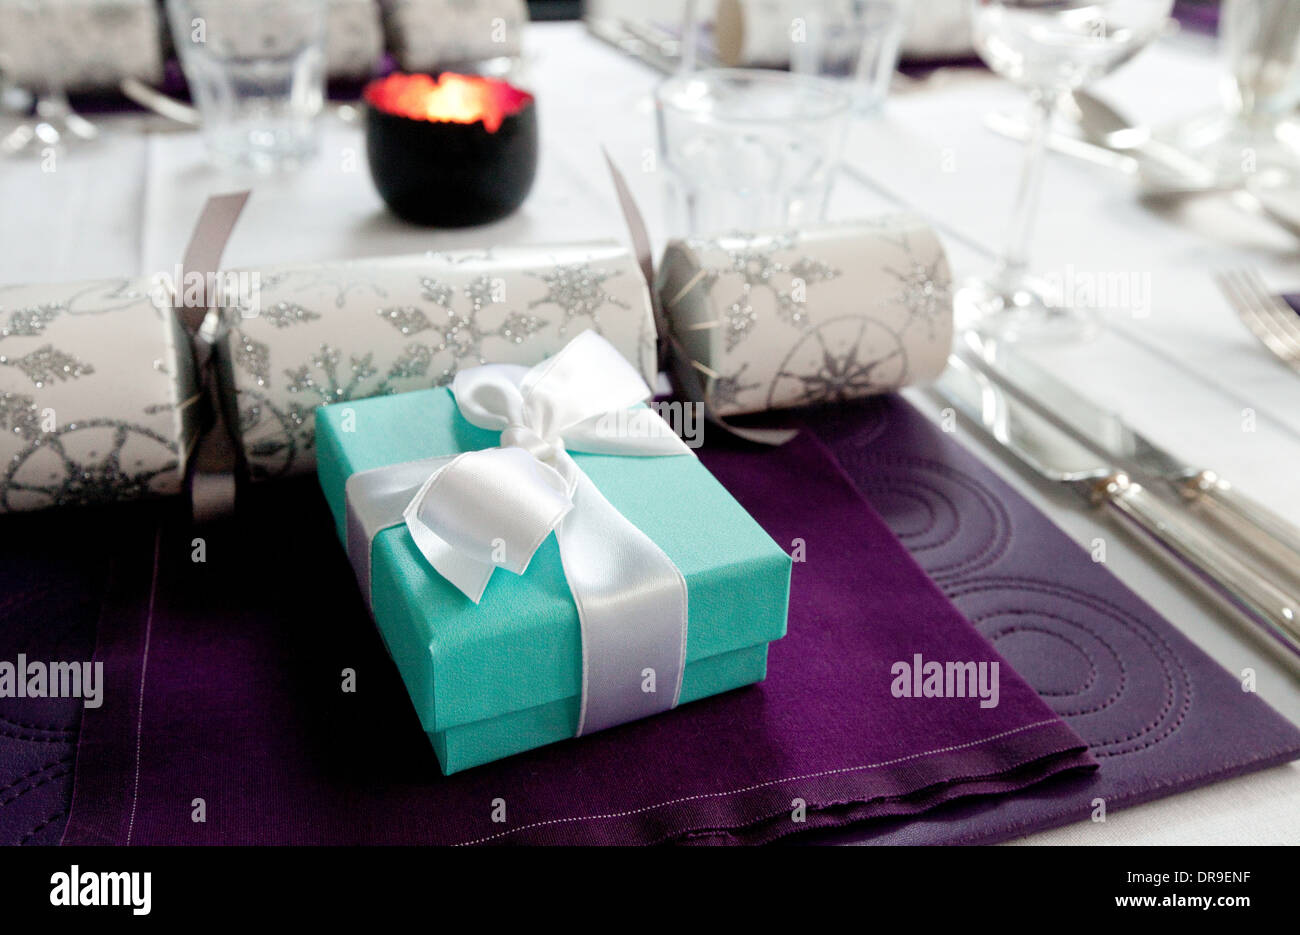 Christmas table present presents at the dinner place setting, UK - Stock Image